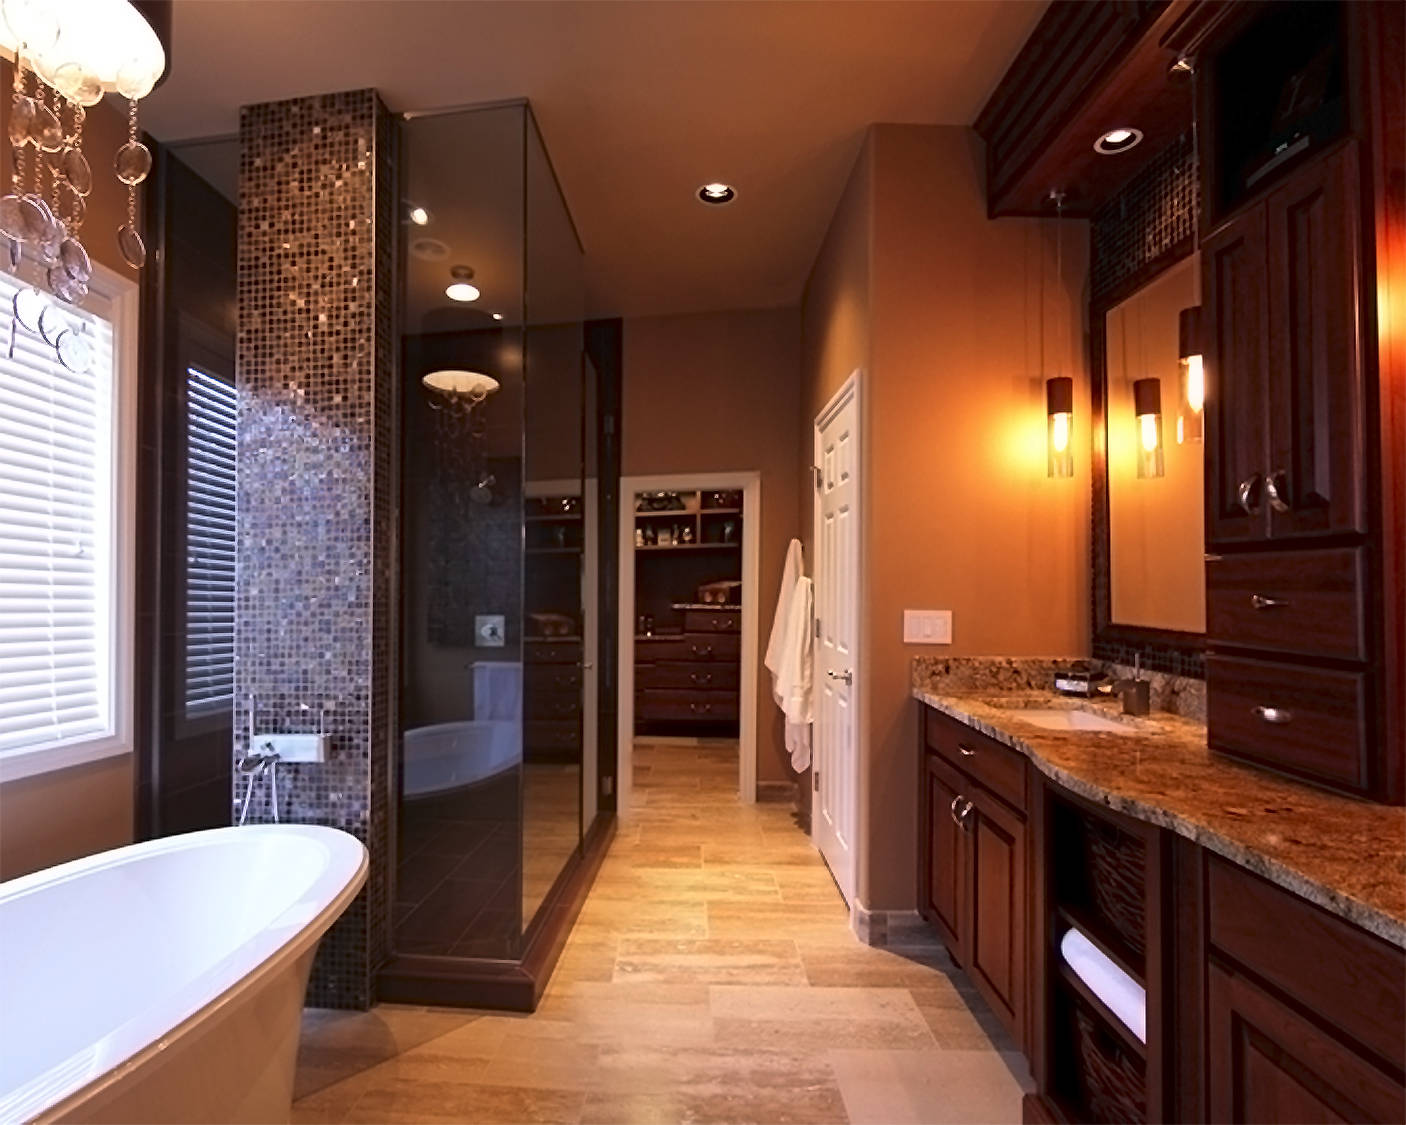 Selin construction bathroom remodel for Bathroom remodel images